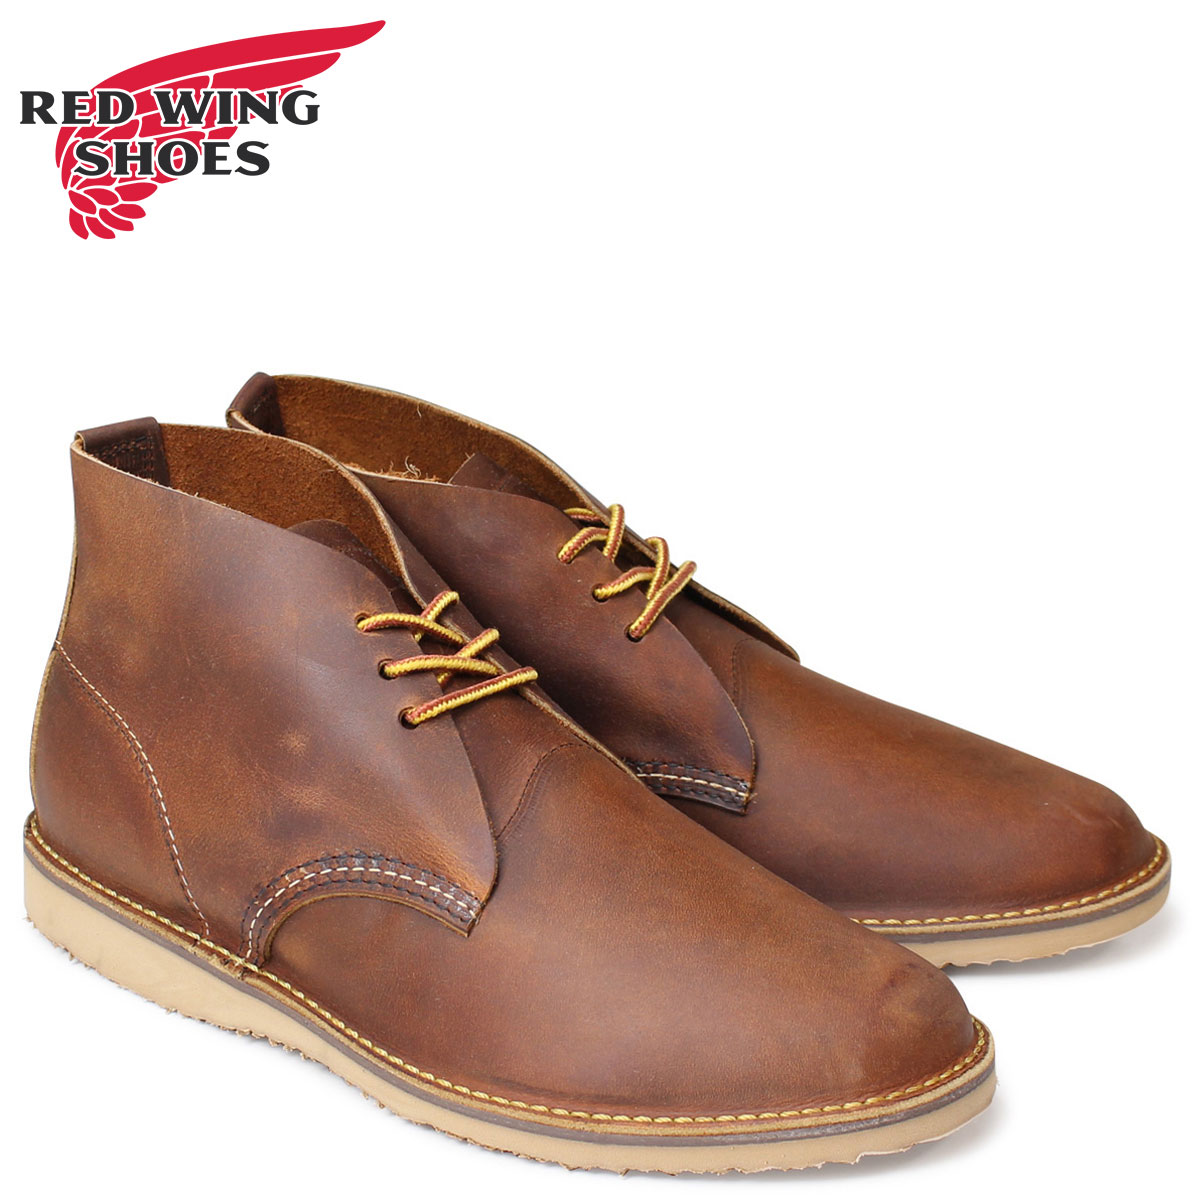 RED WING red red wing boots 3322 chukka boots WEEKENDER CHUKKA D Wise men